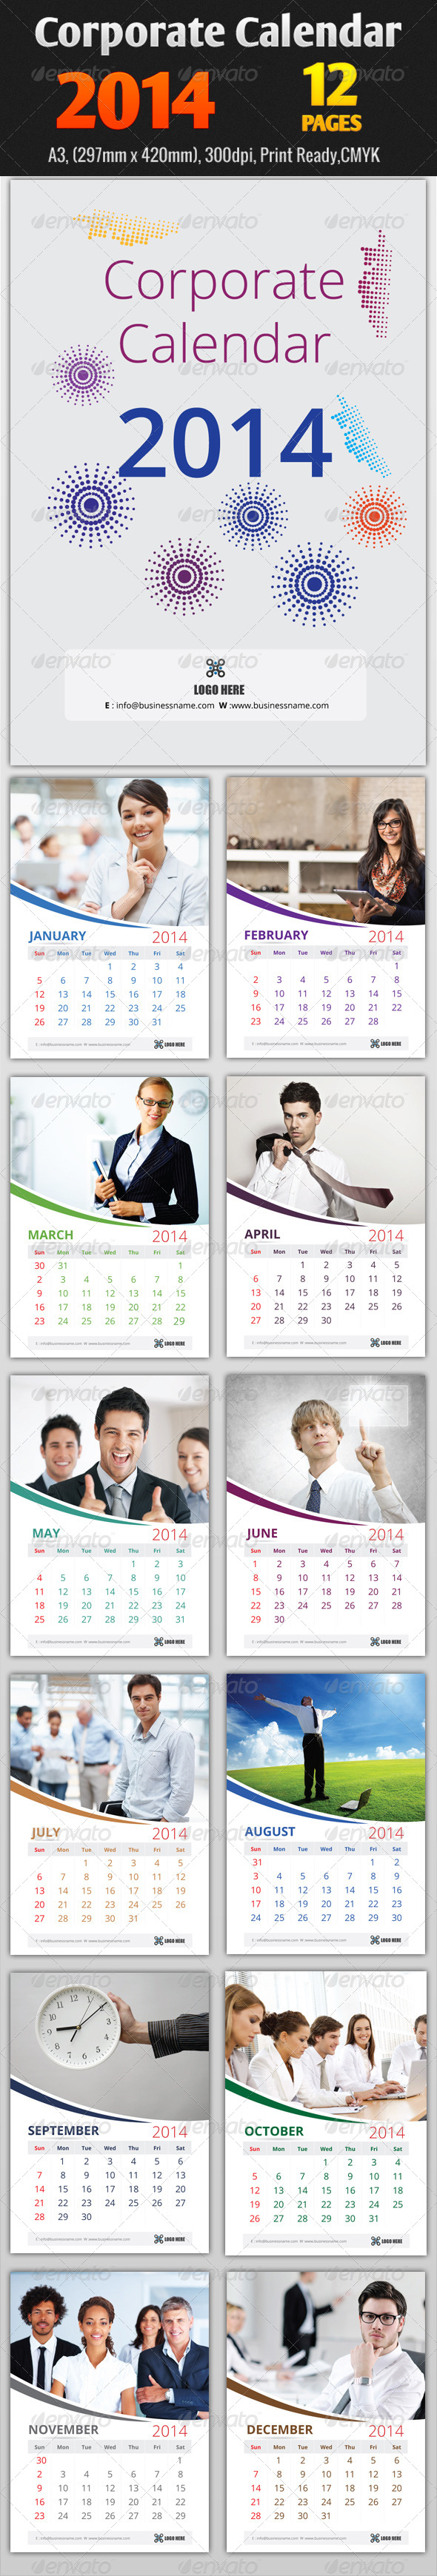 Corporate Calendar 2014 Templates - Calendars Stationery